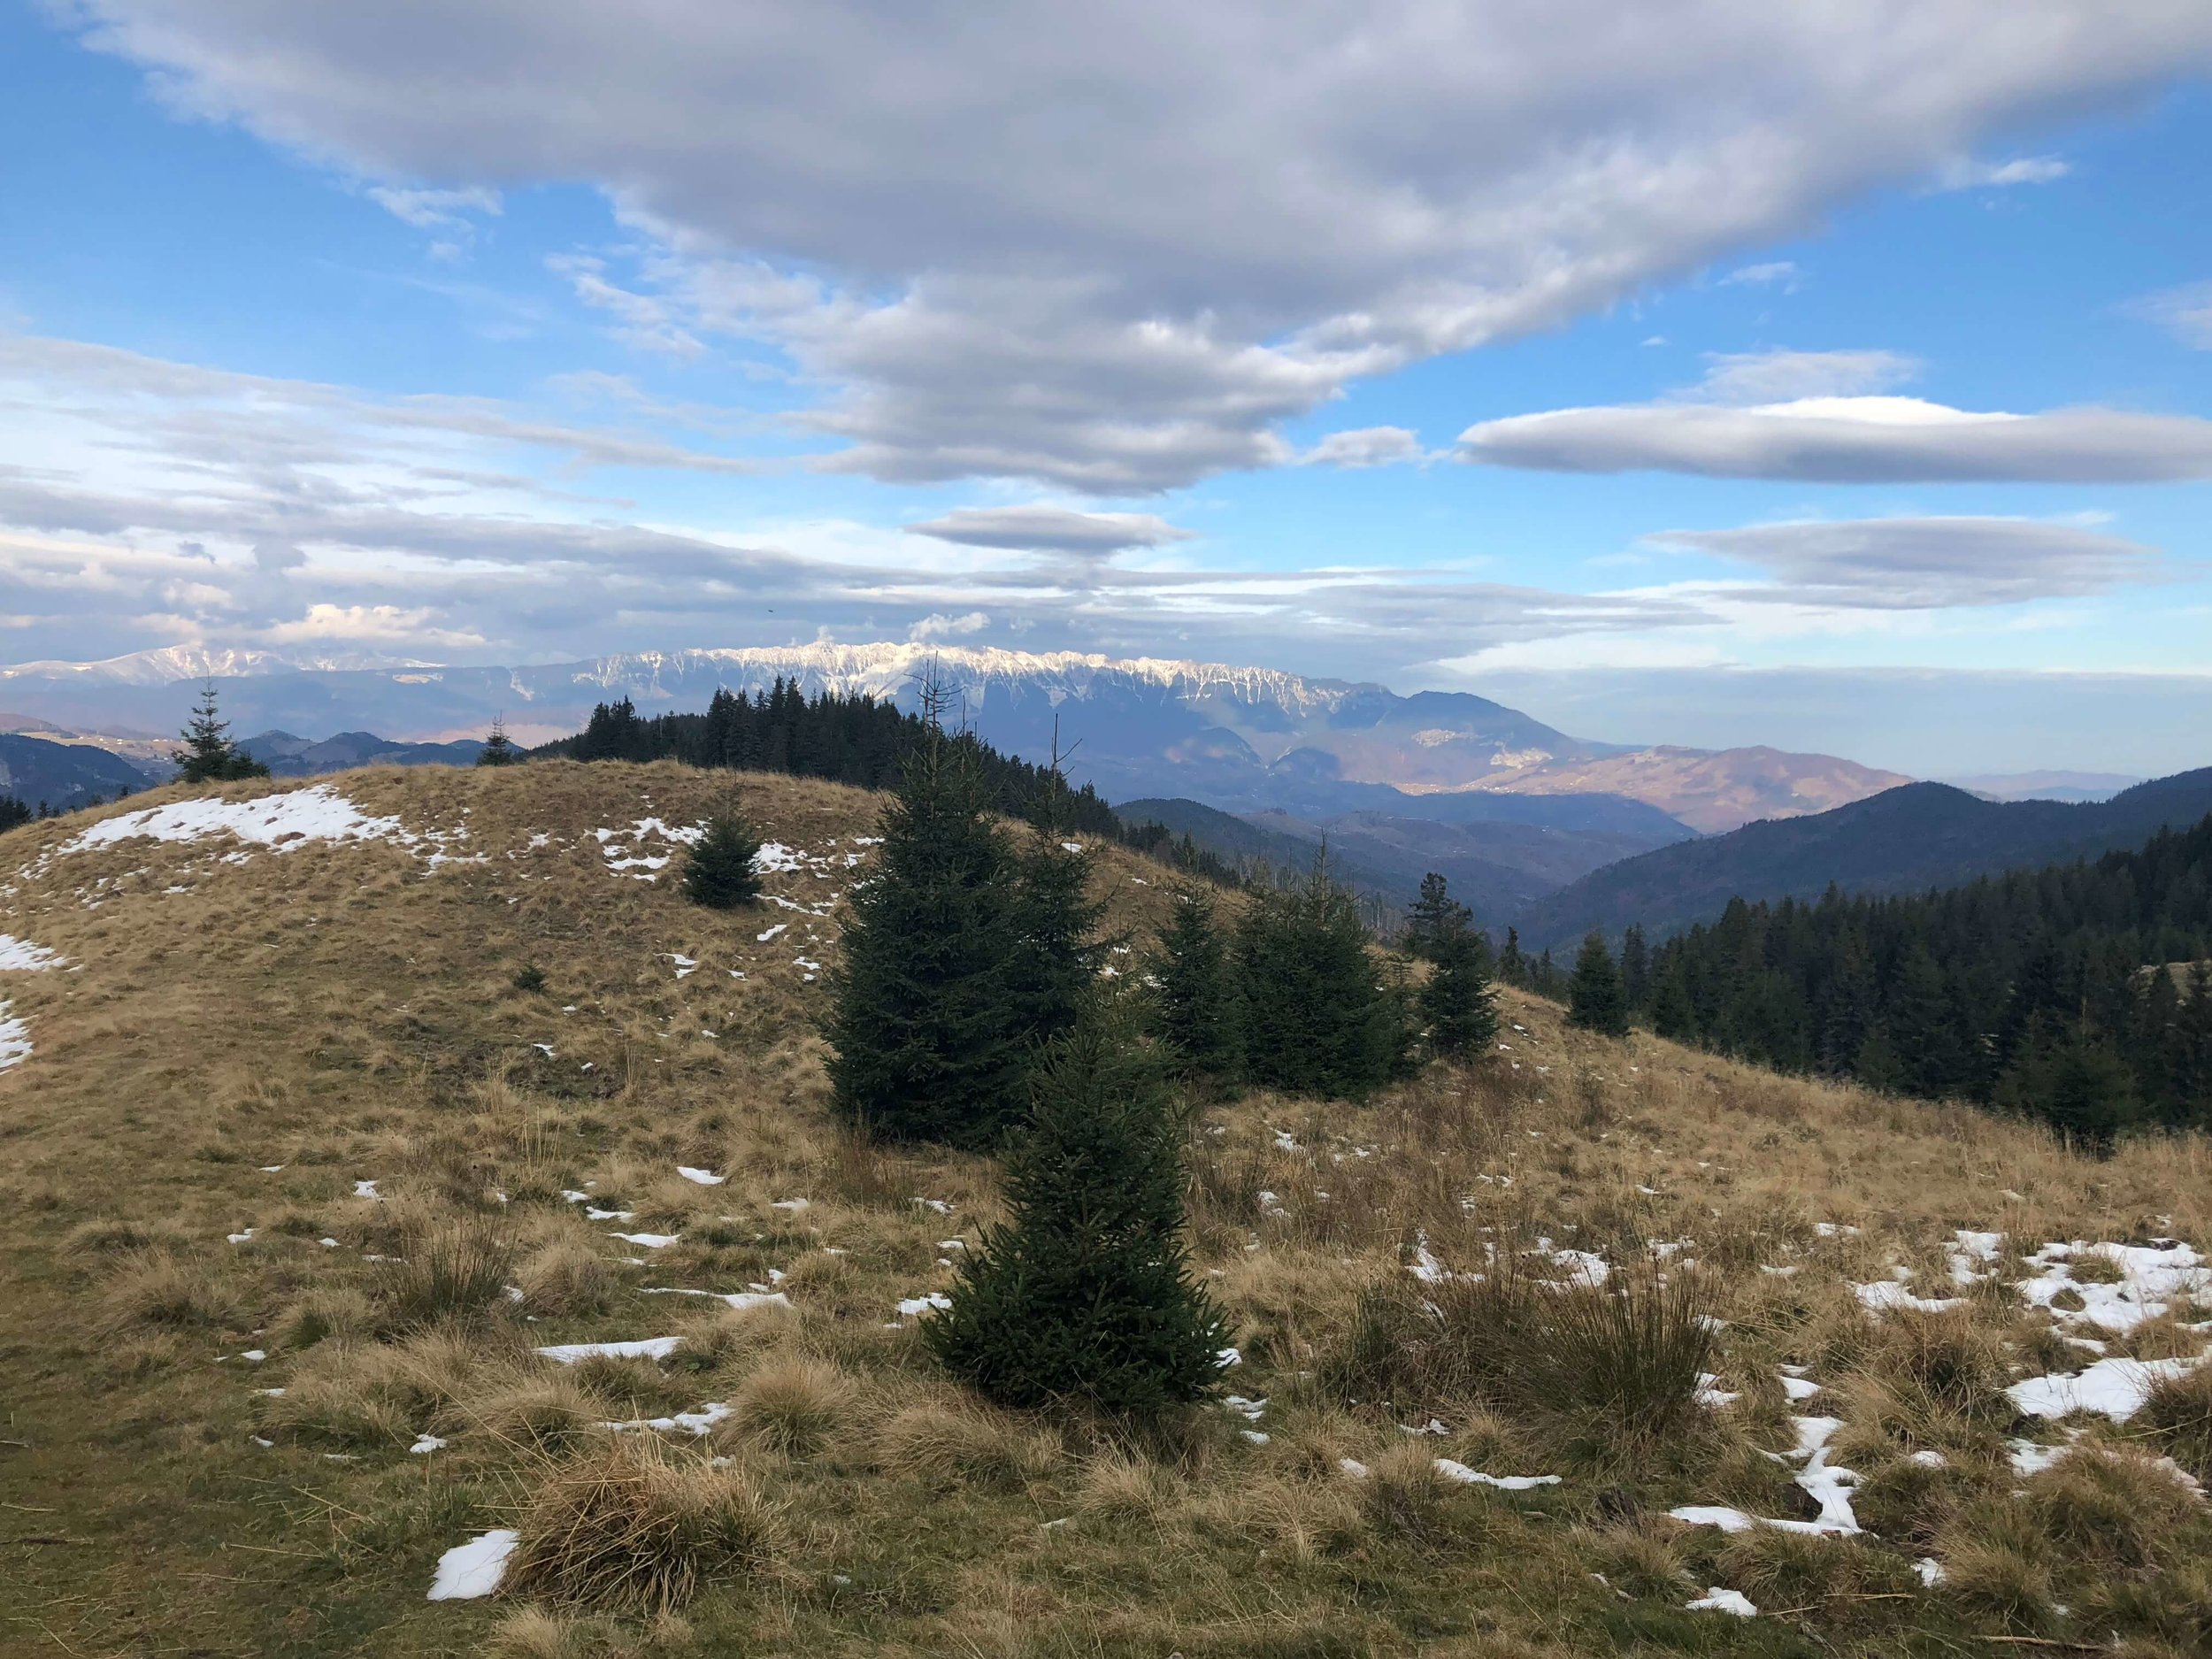 During nearly the entire hike you will be able to see this incredible view of  Piatra Craiului  in the distance.